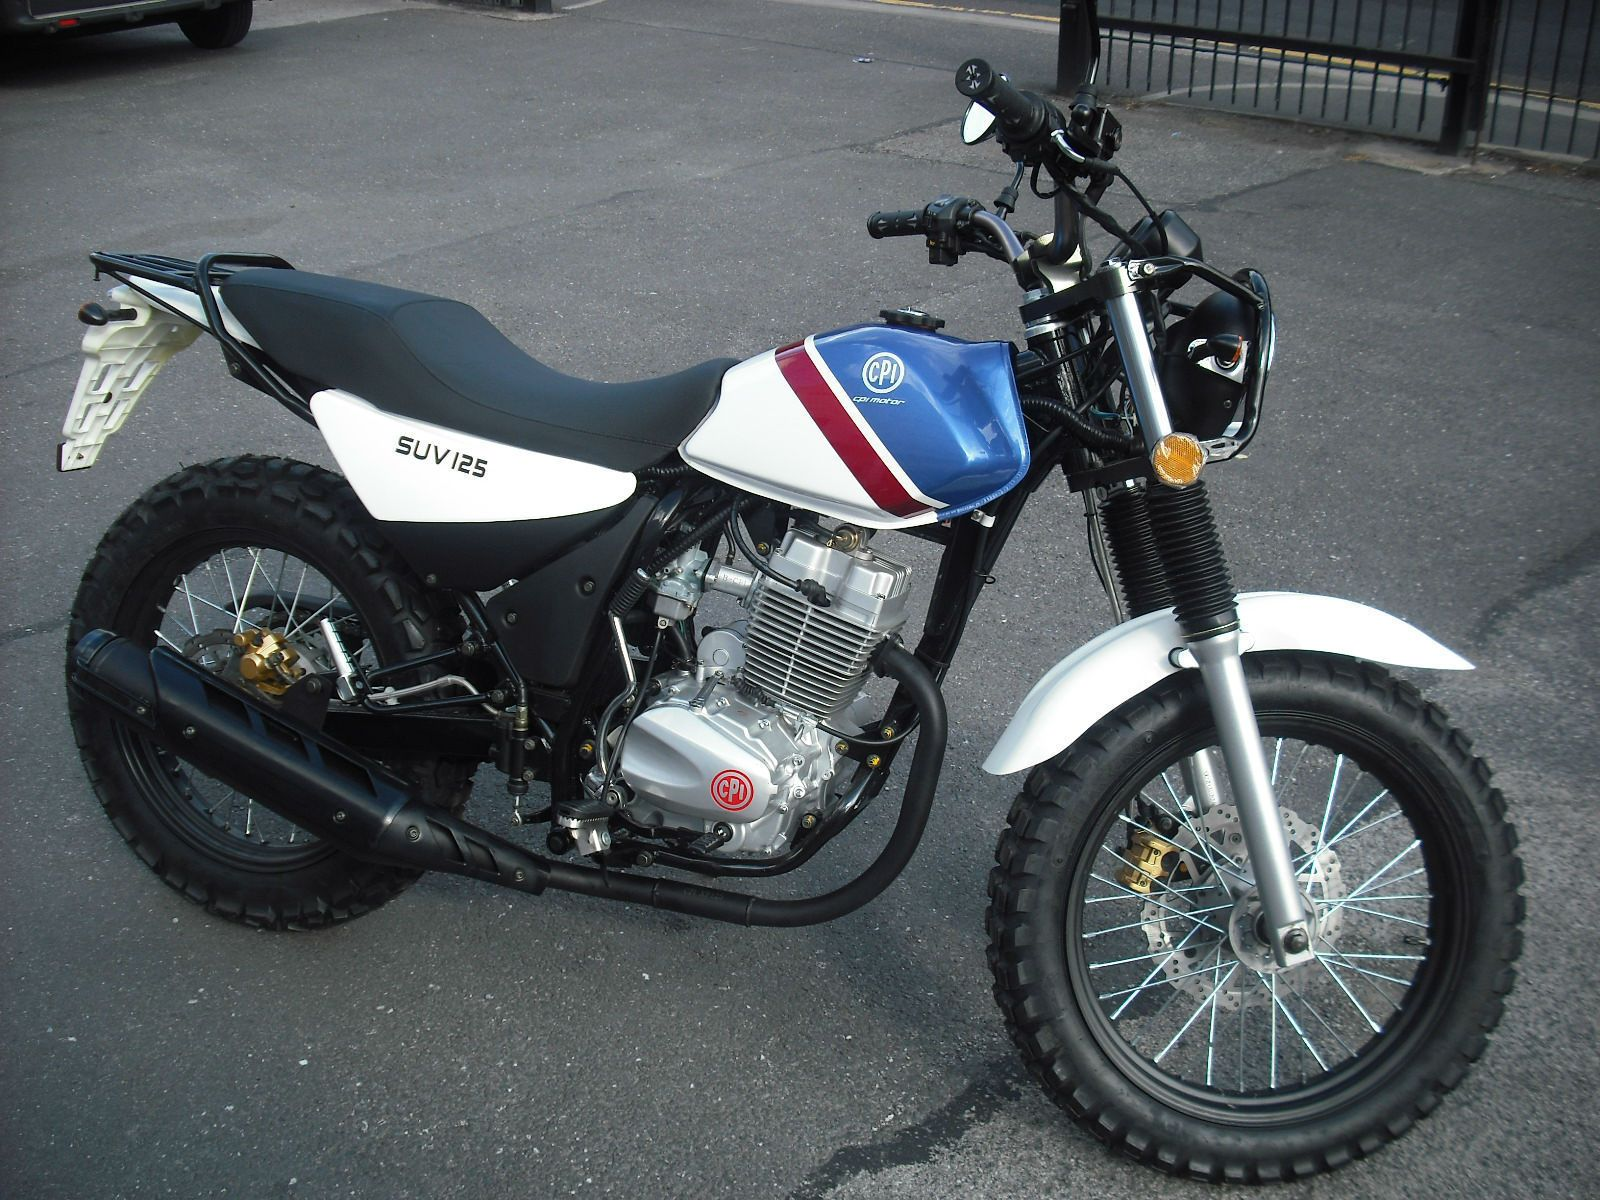 CPI SUV 125 cc motorcycle | eBay | Shit hot bikes  | Motorcycle